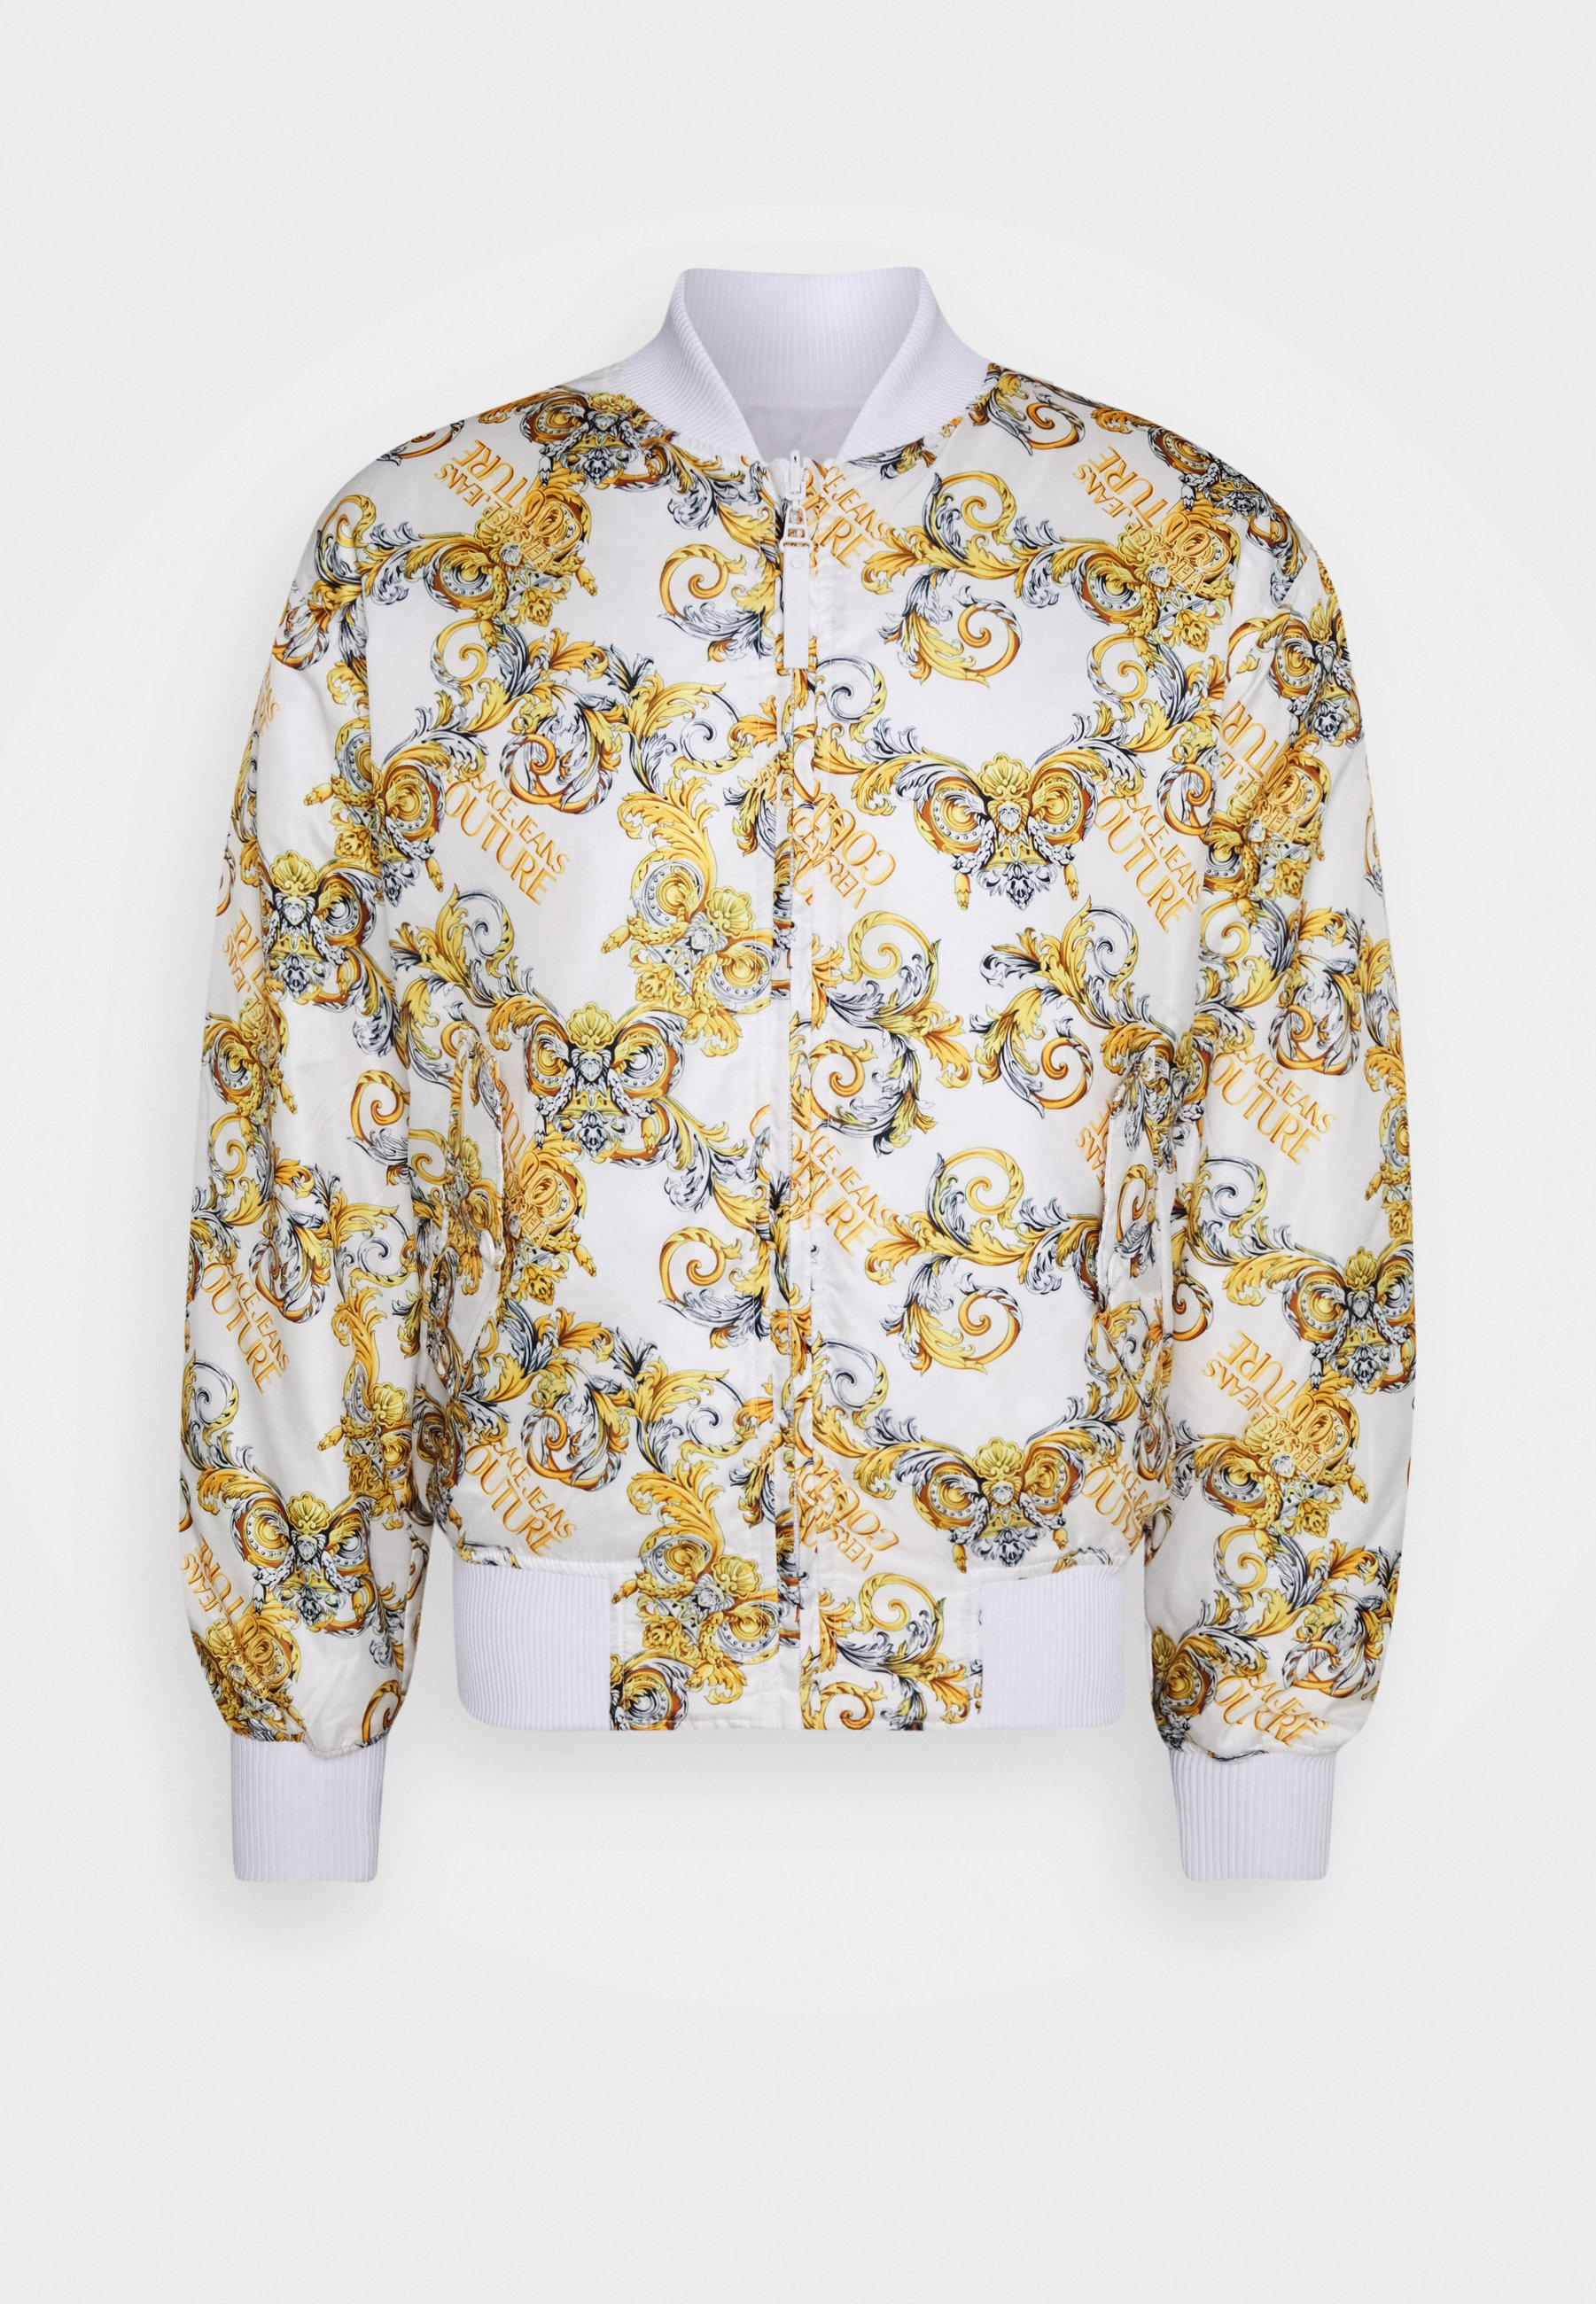 Versace Jeans Couture RISTOP PRINTED LOGO BAROQUE